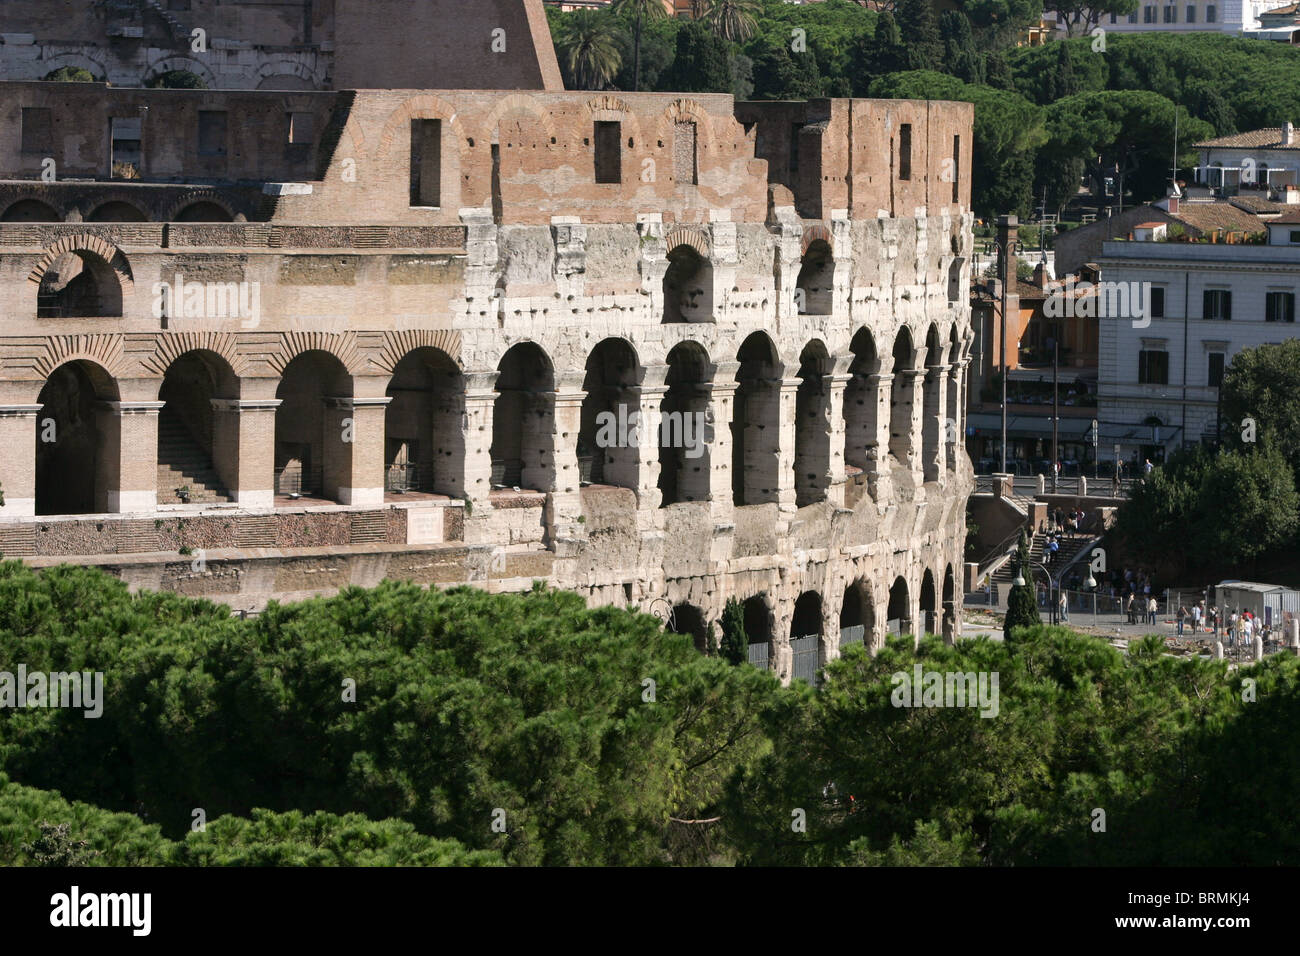 Colosseum View Ancient Architecture Engineering Attraction Appeal Flavian Amphitheater Elliptical Capital European History